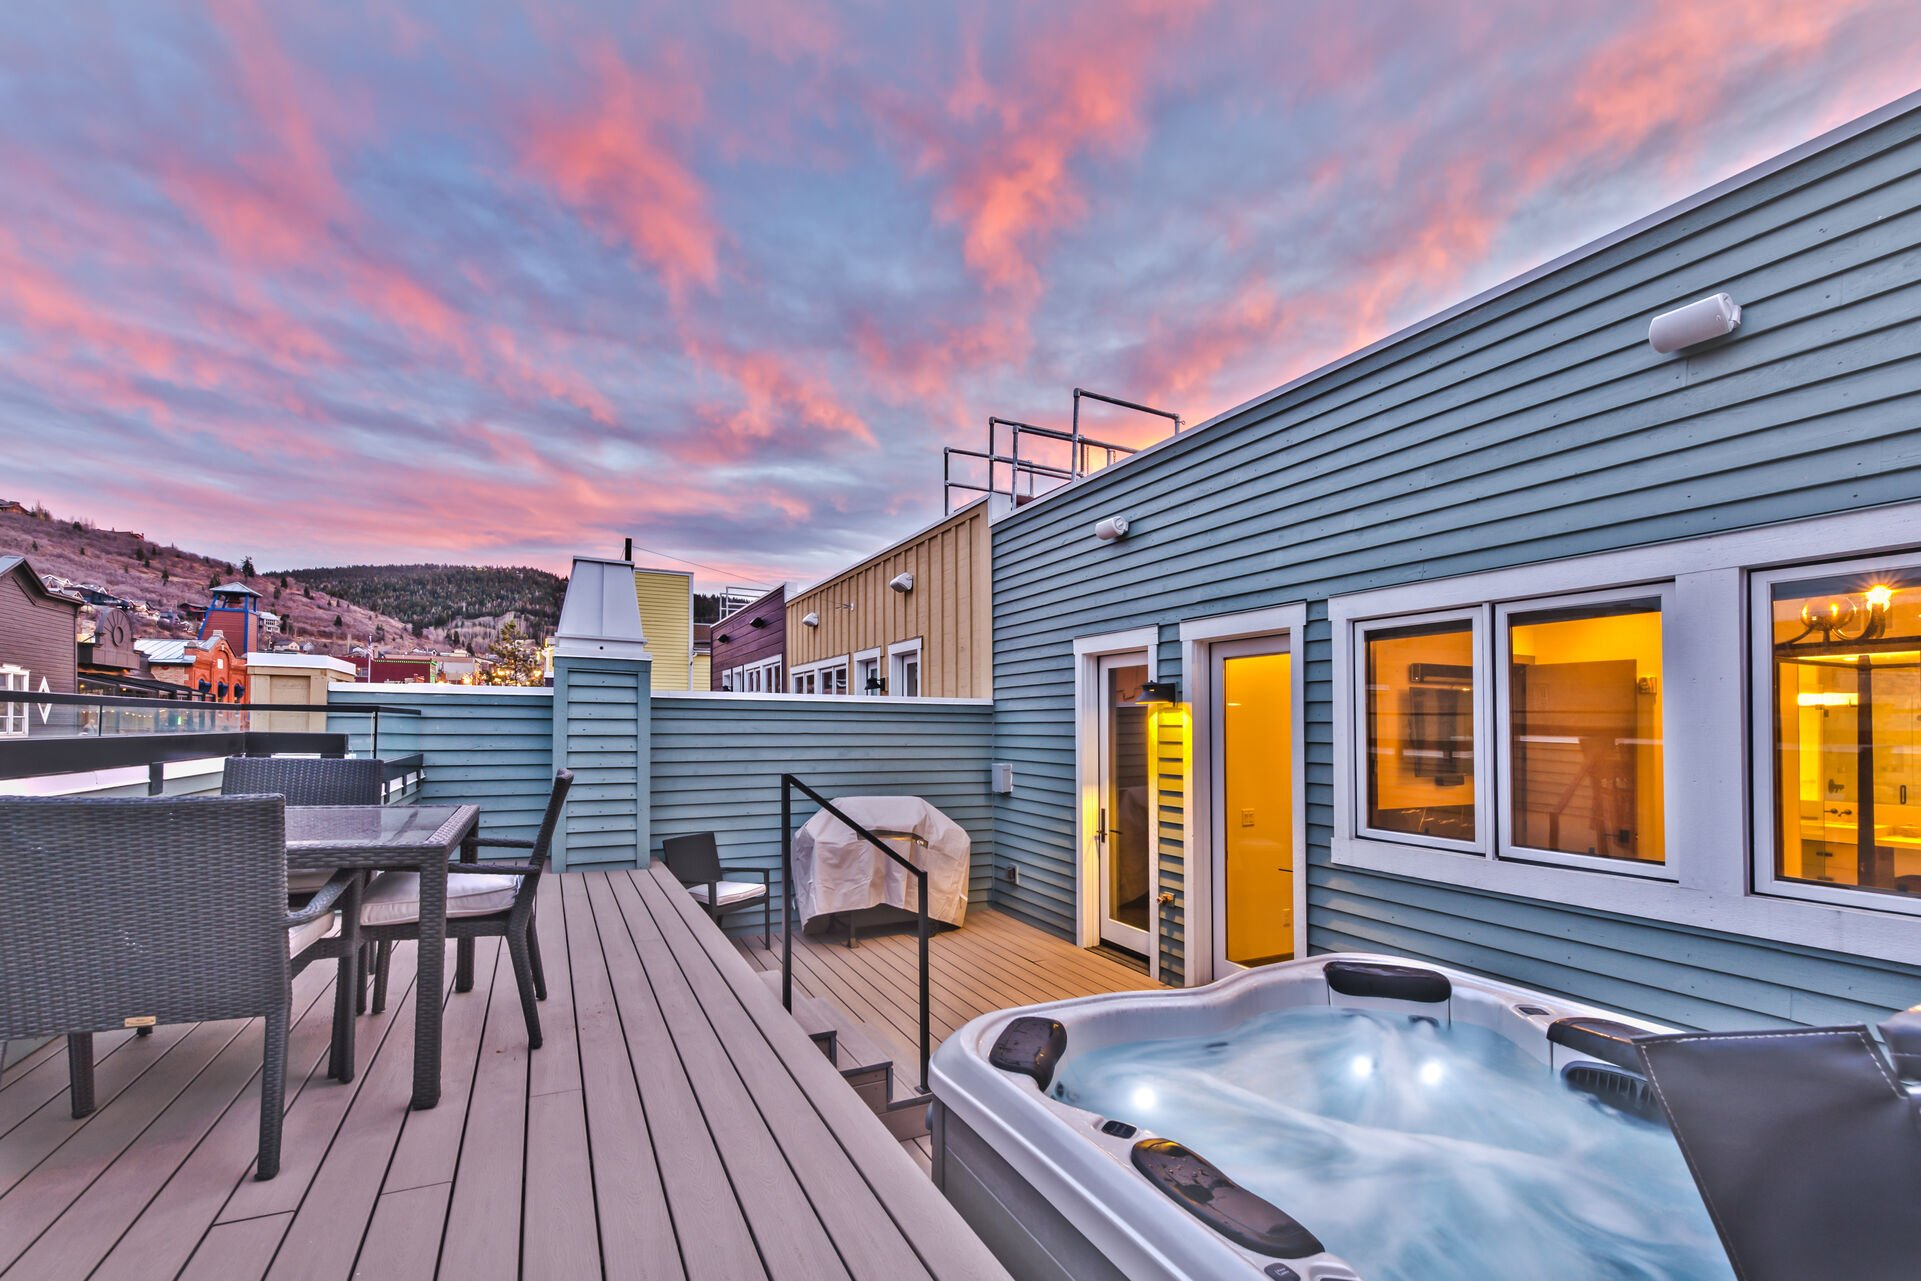 Large Upper Level Private Deck with 8-Person Hot Tub, Patio Seating and BBQ Grill